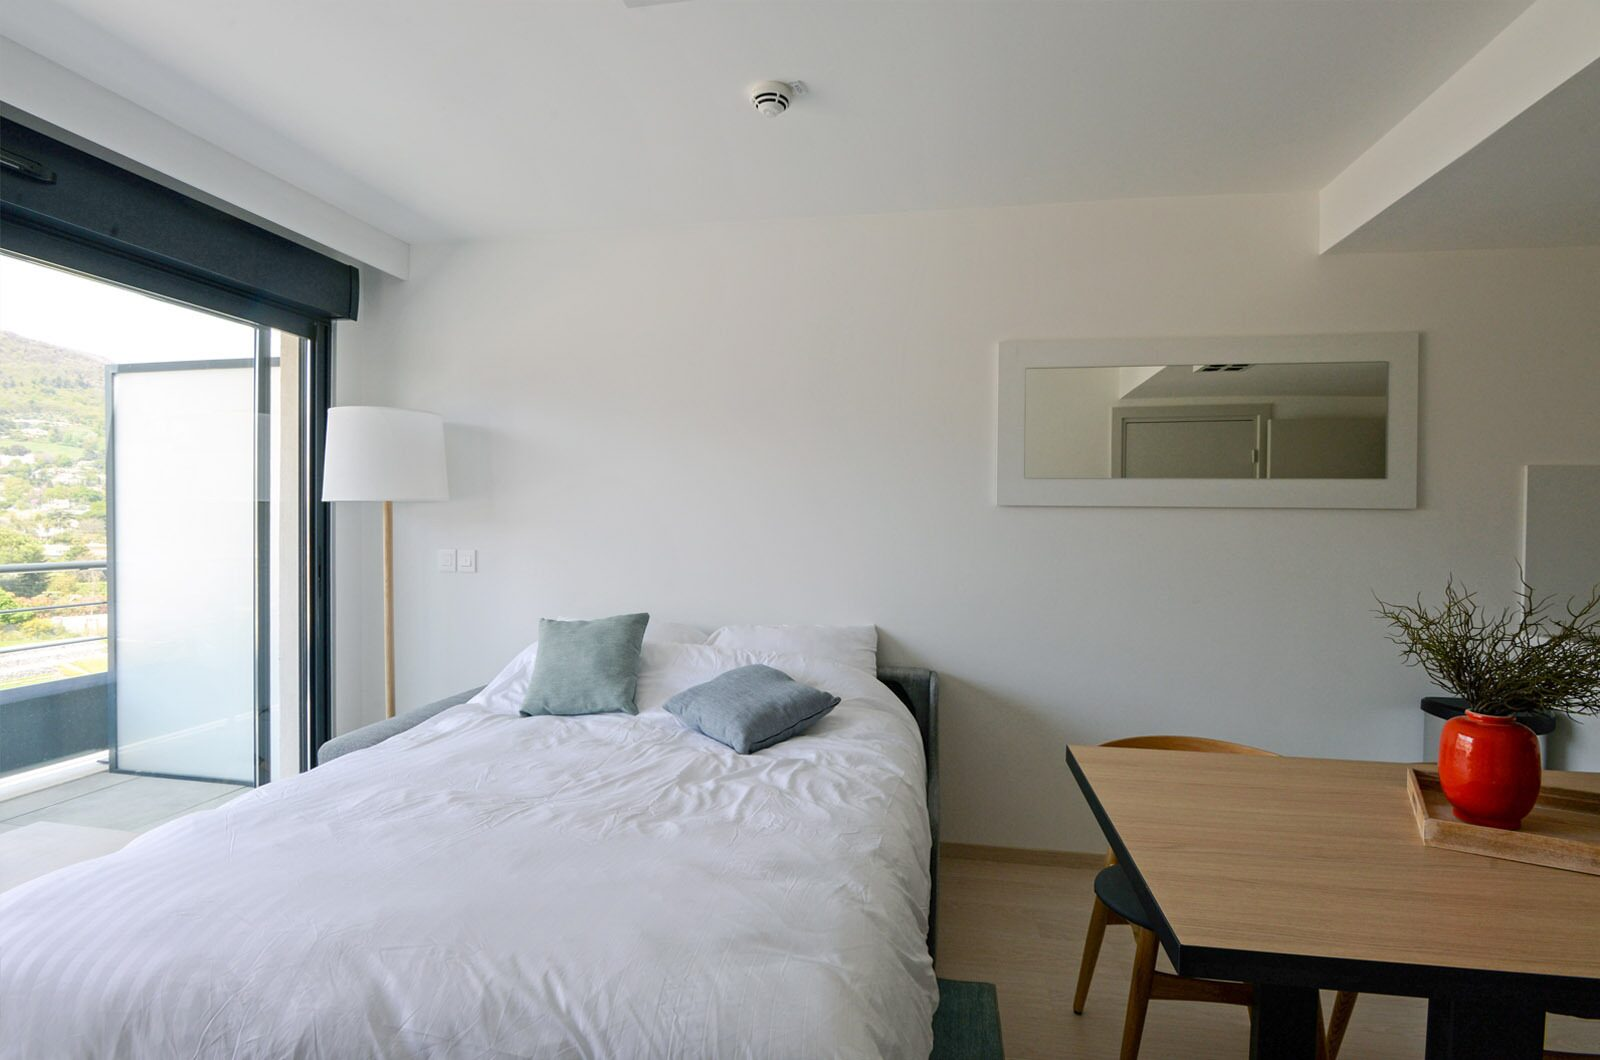 New standard suite for 6 people with double bed, single beds and a sofabed.